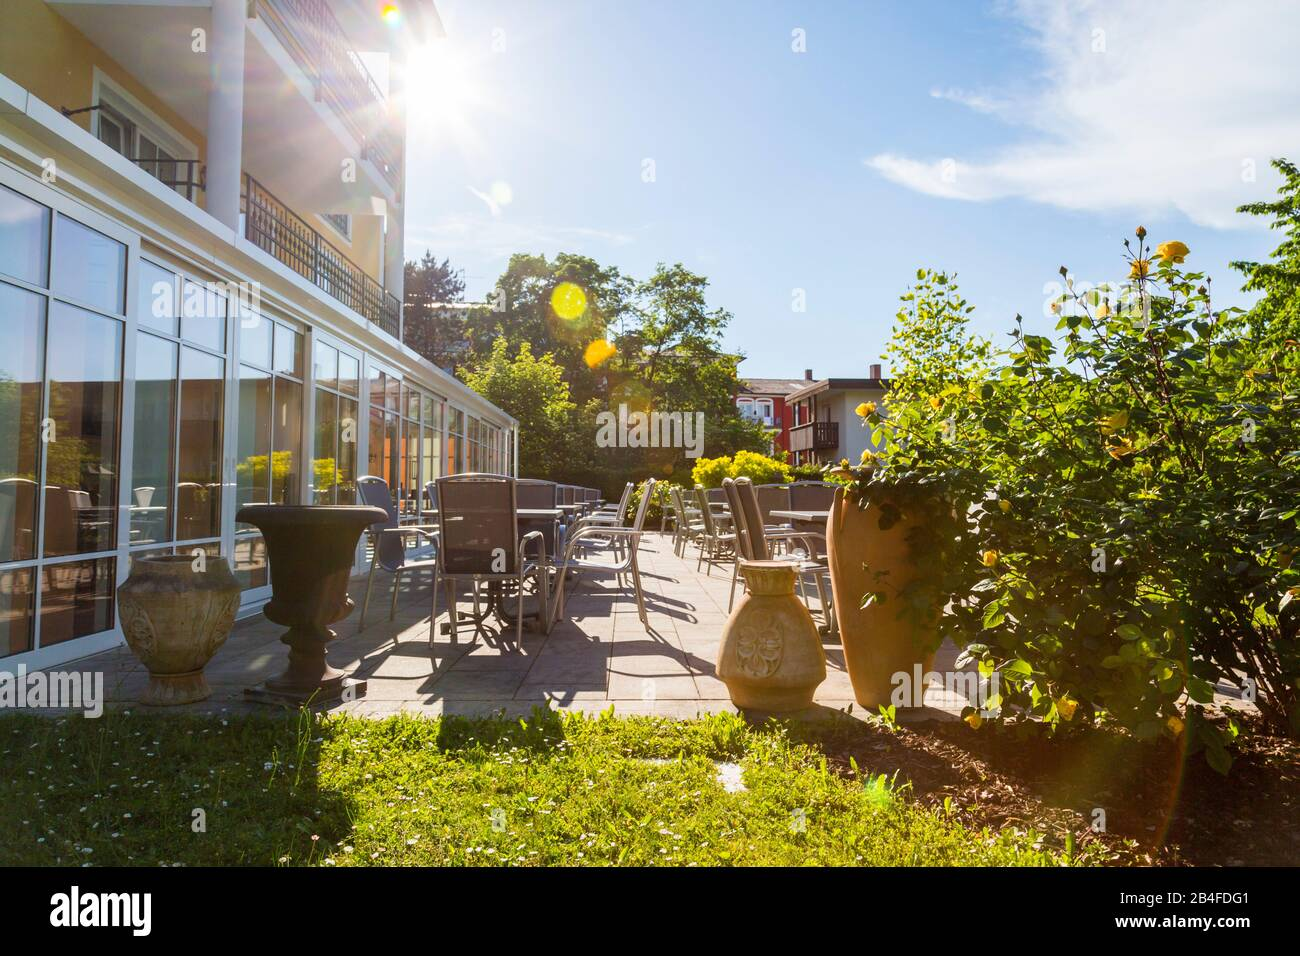 https www alamy com sun flare around the corner of a commercial glass fronted building over an outdoor patio with restaurant tables and chairs surrounded by green plants in bad fussing lower bavaria germany in summer image347005905 html